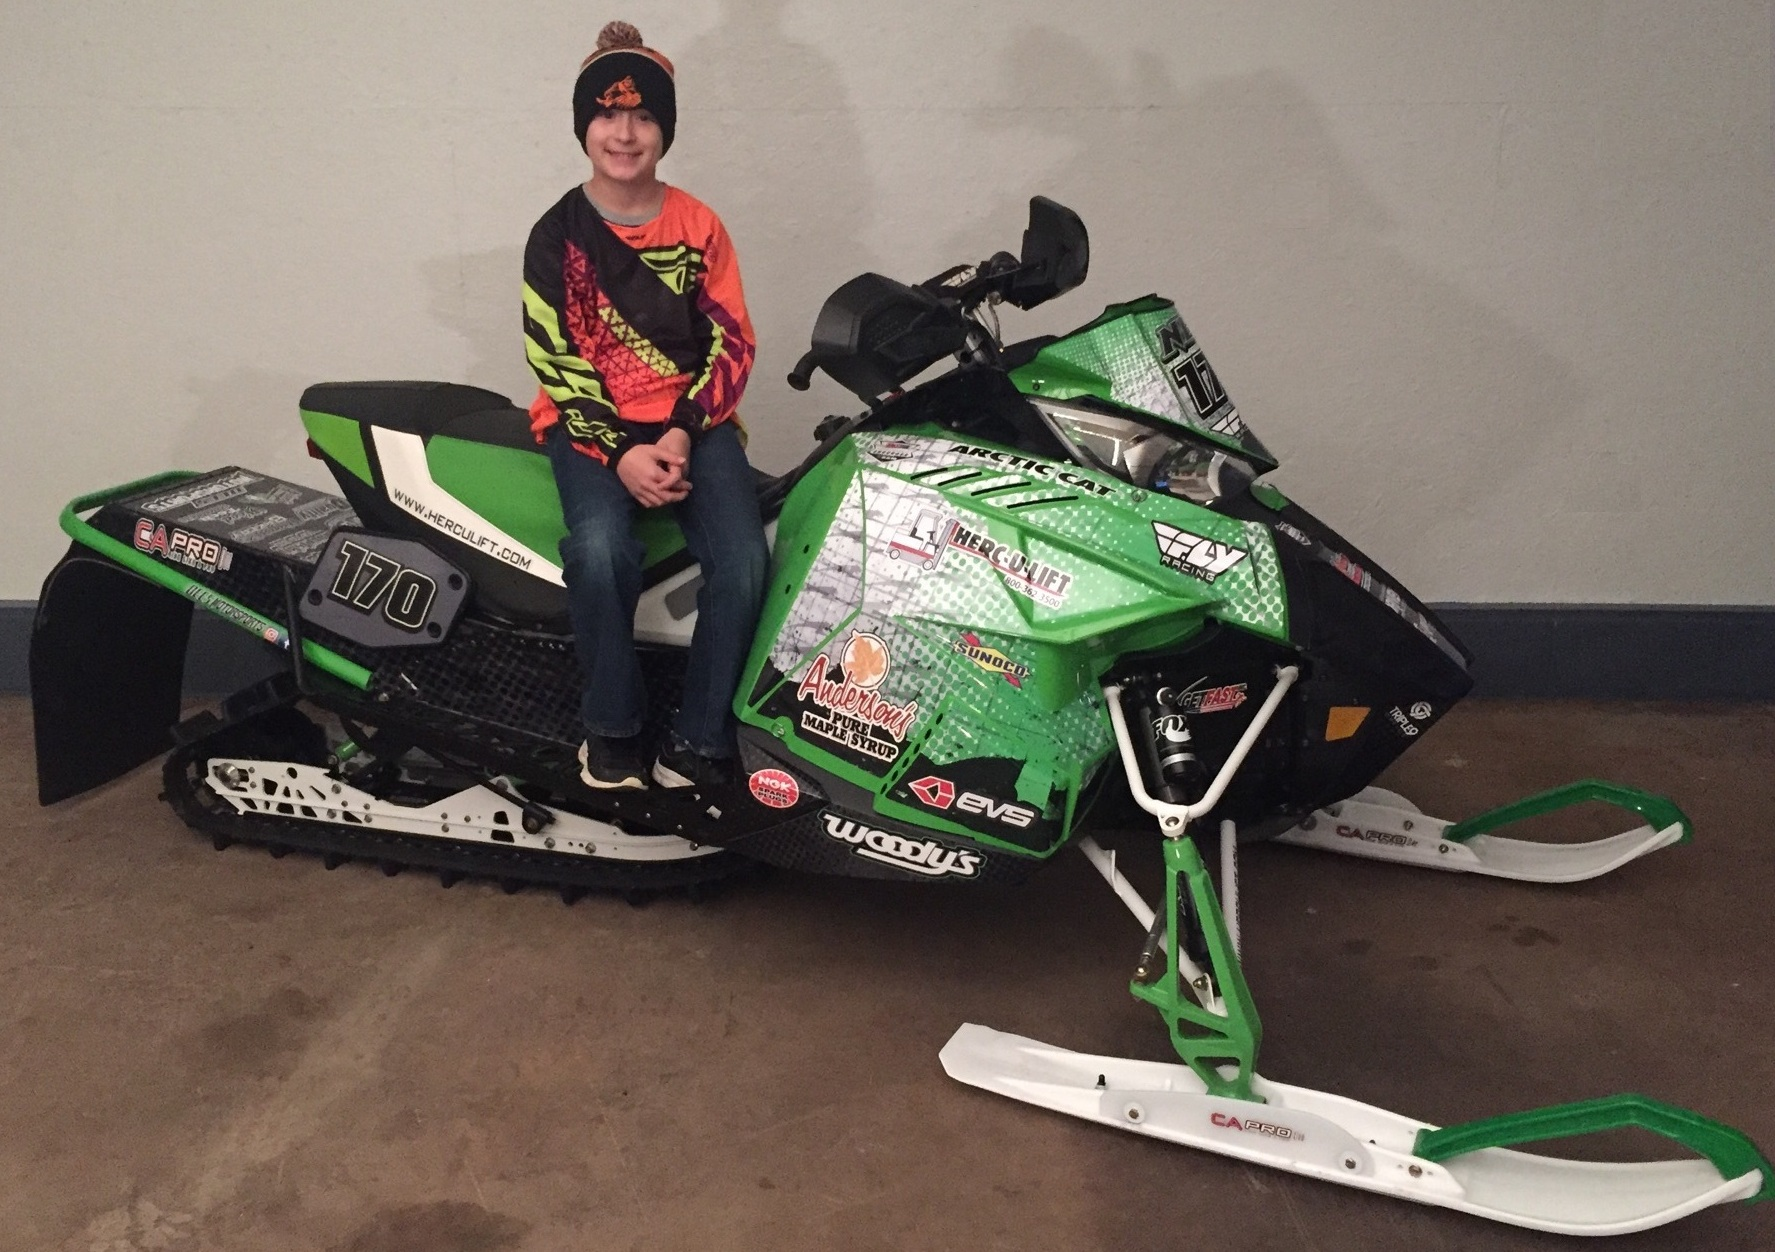 Neil Dees on his 2015 / 2016 Arctic Cat Race Sled.